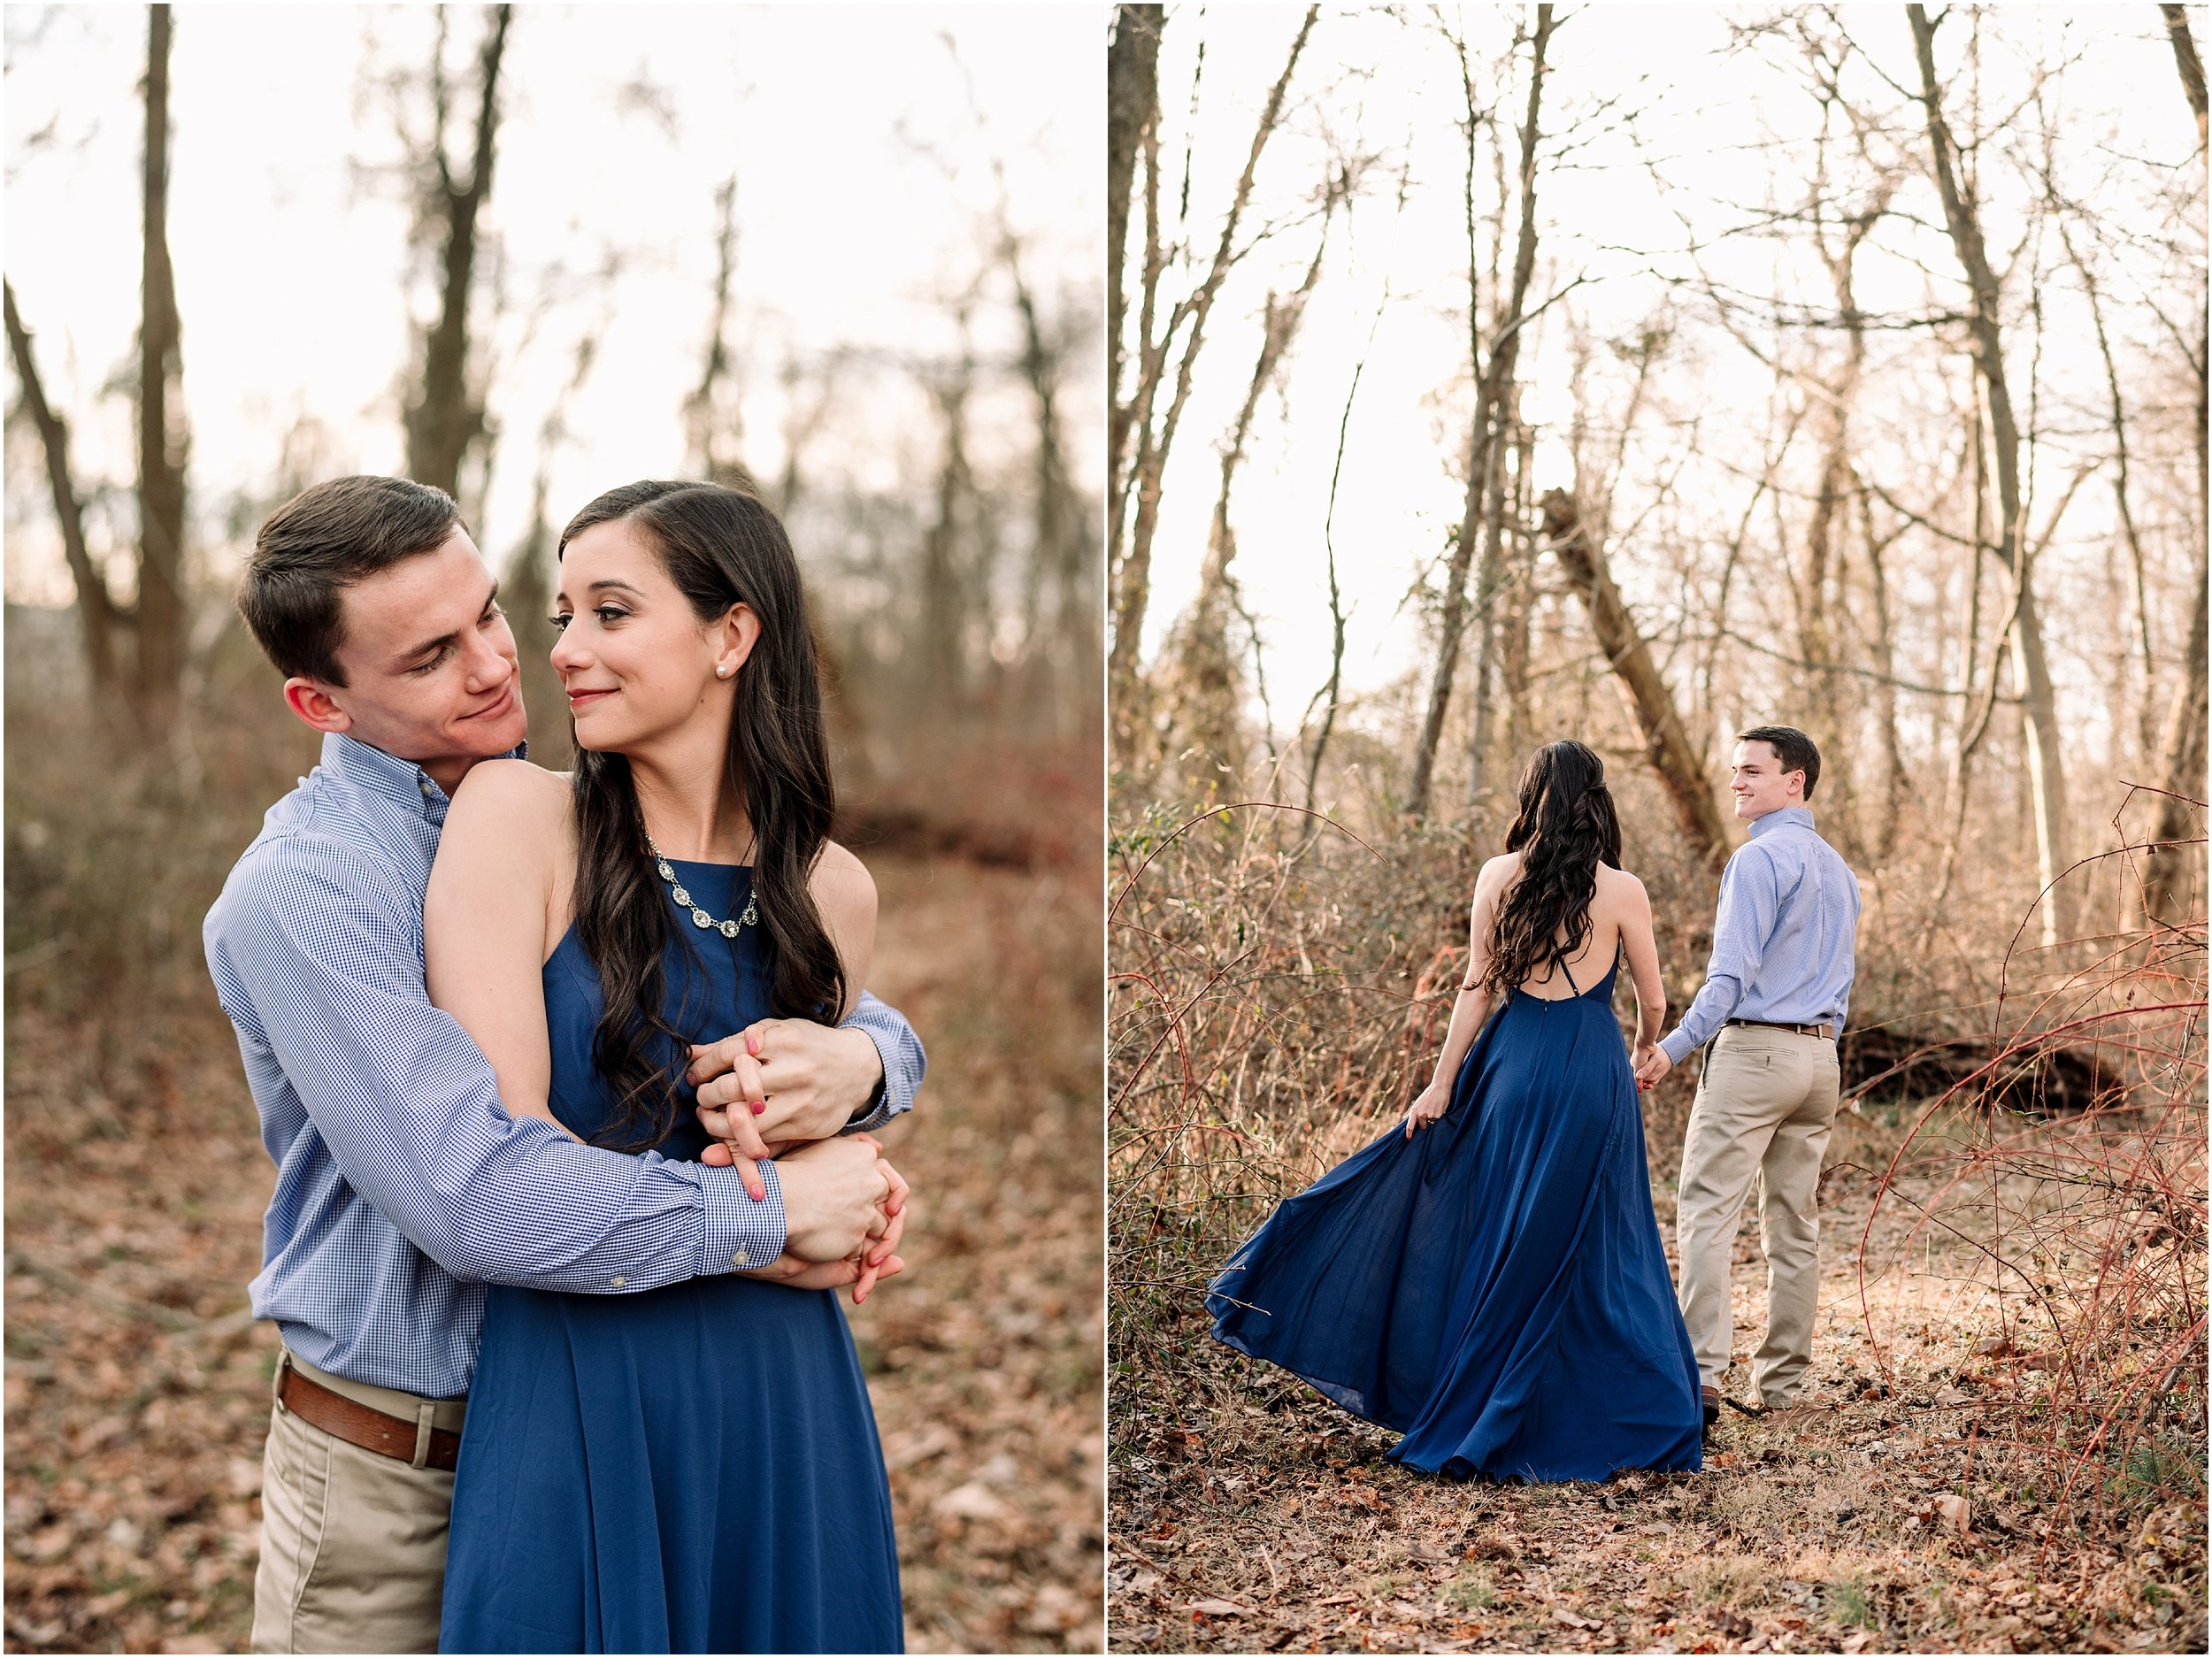 hannah leigh photography winter overlook engagement session lancaster PA_2633.jpg